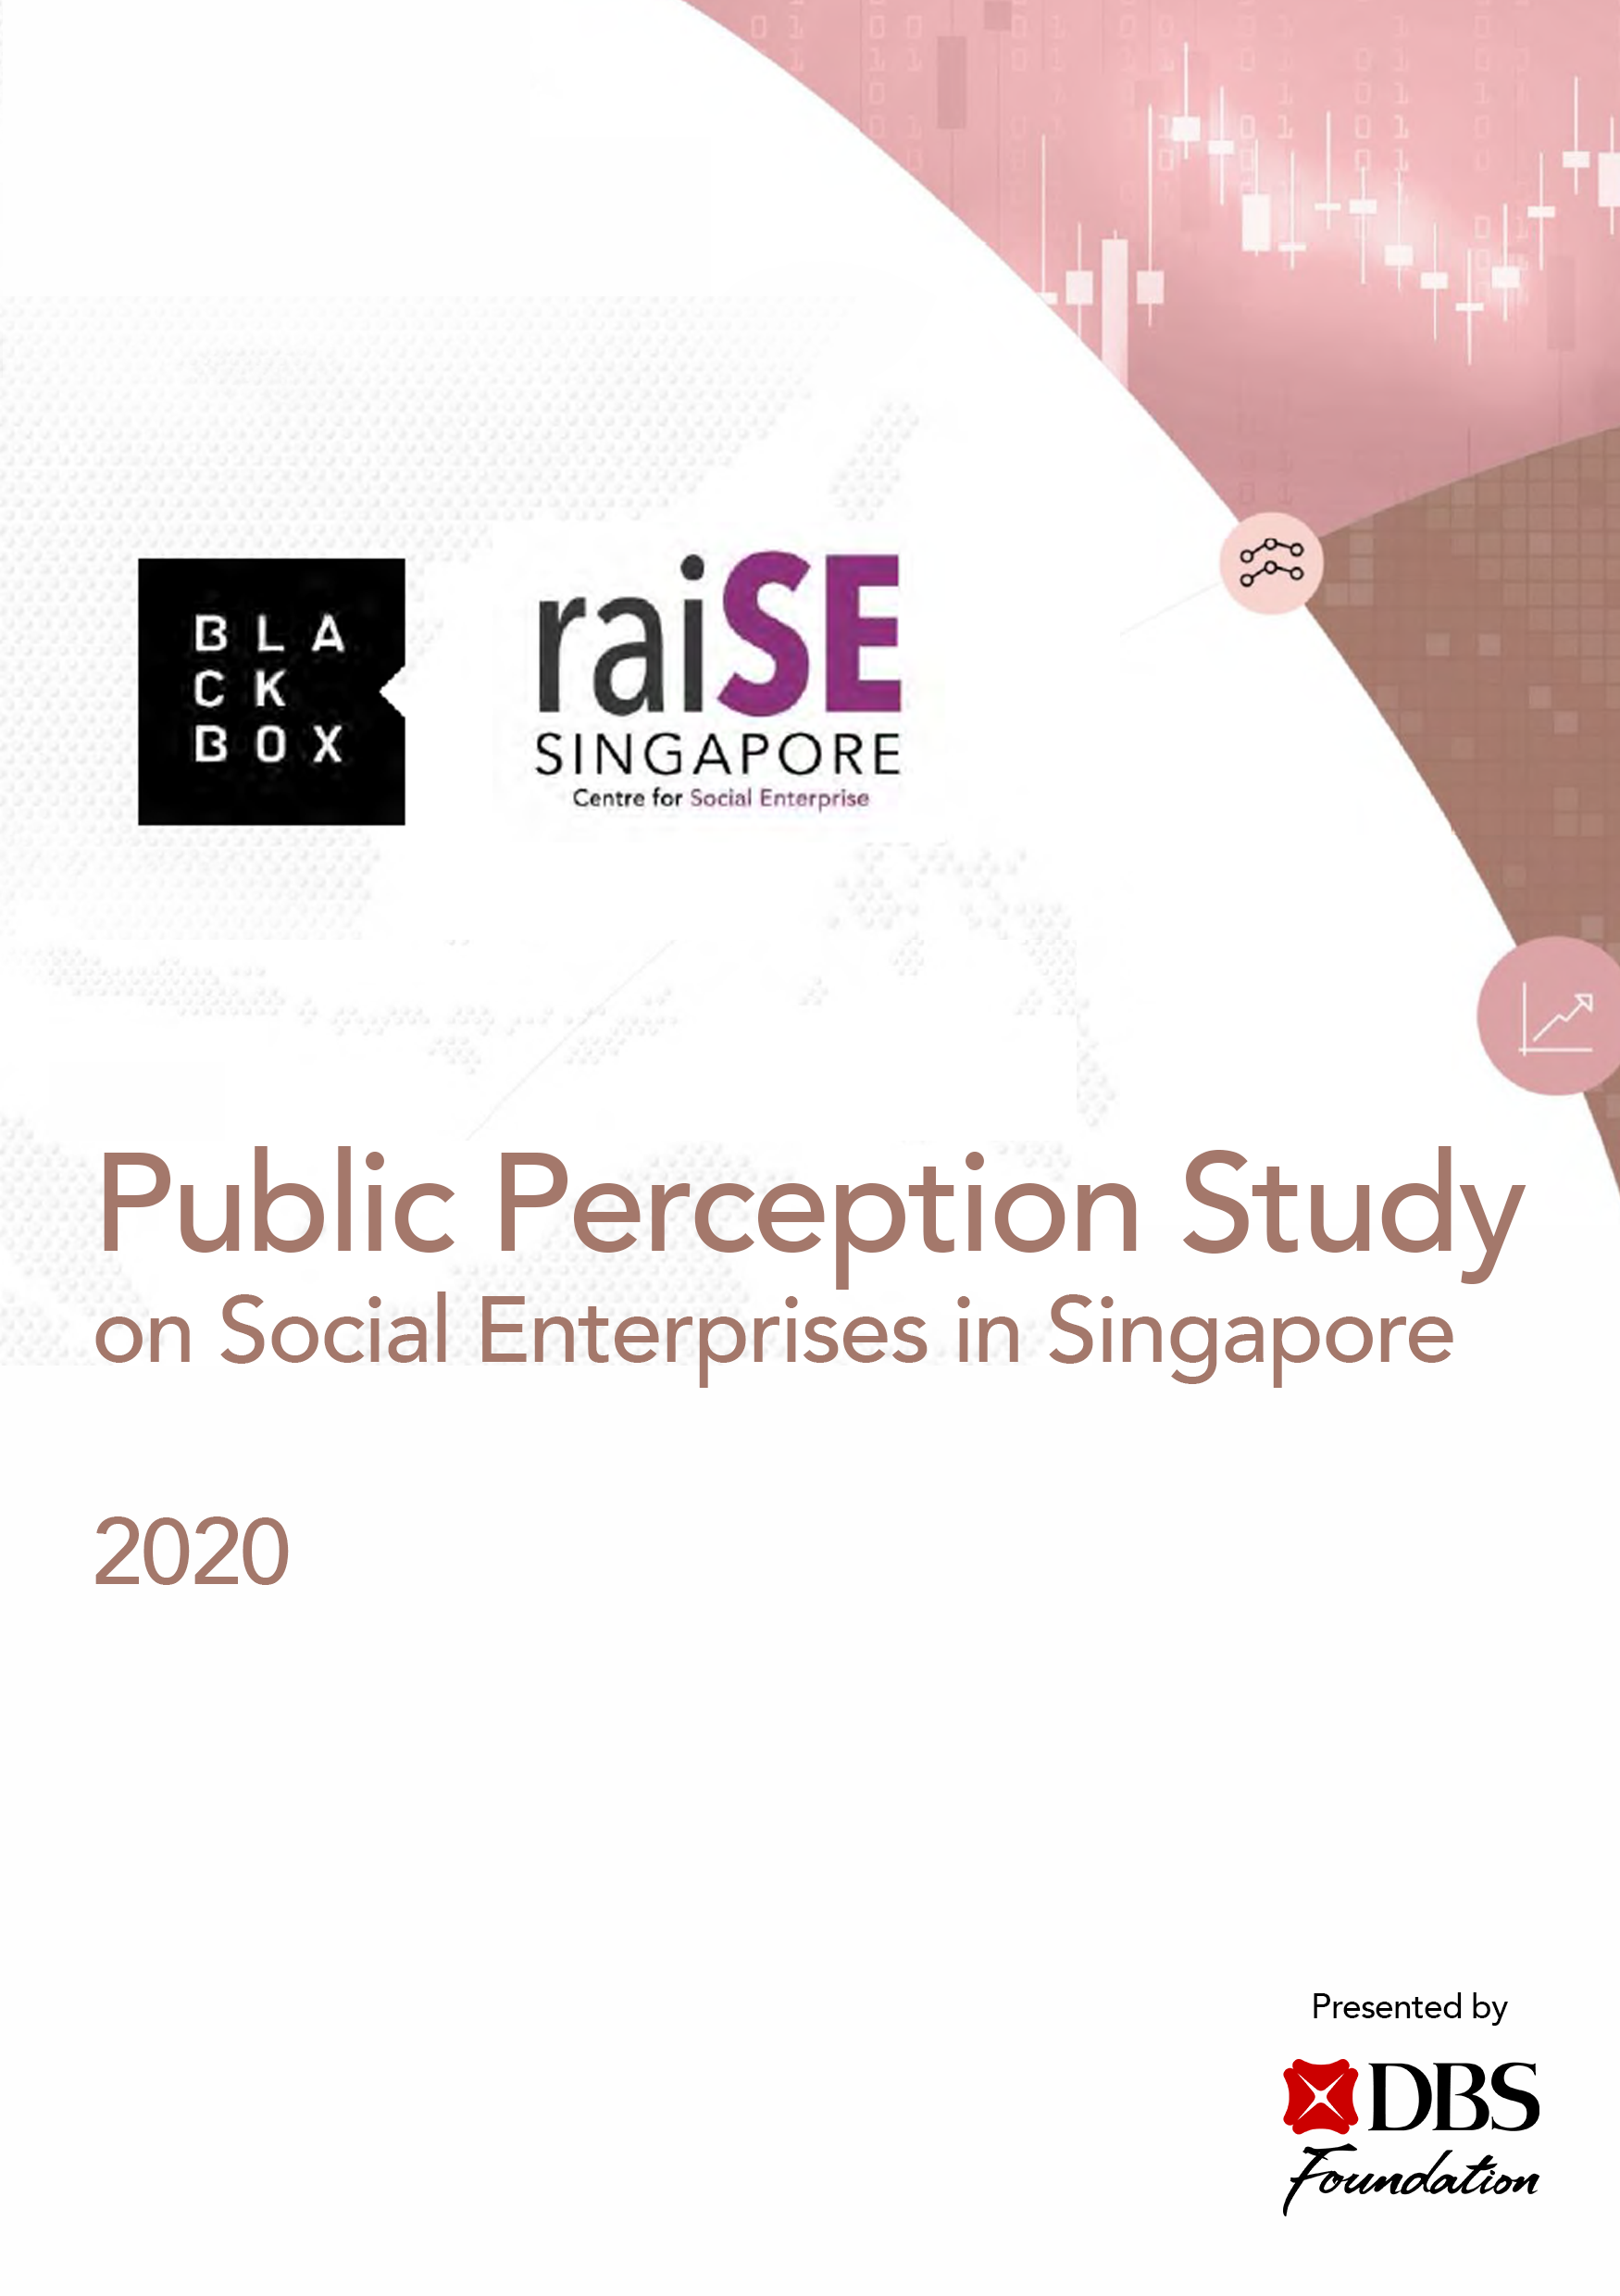 Public Perception Study 2020